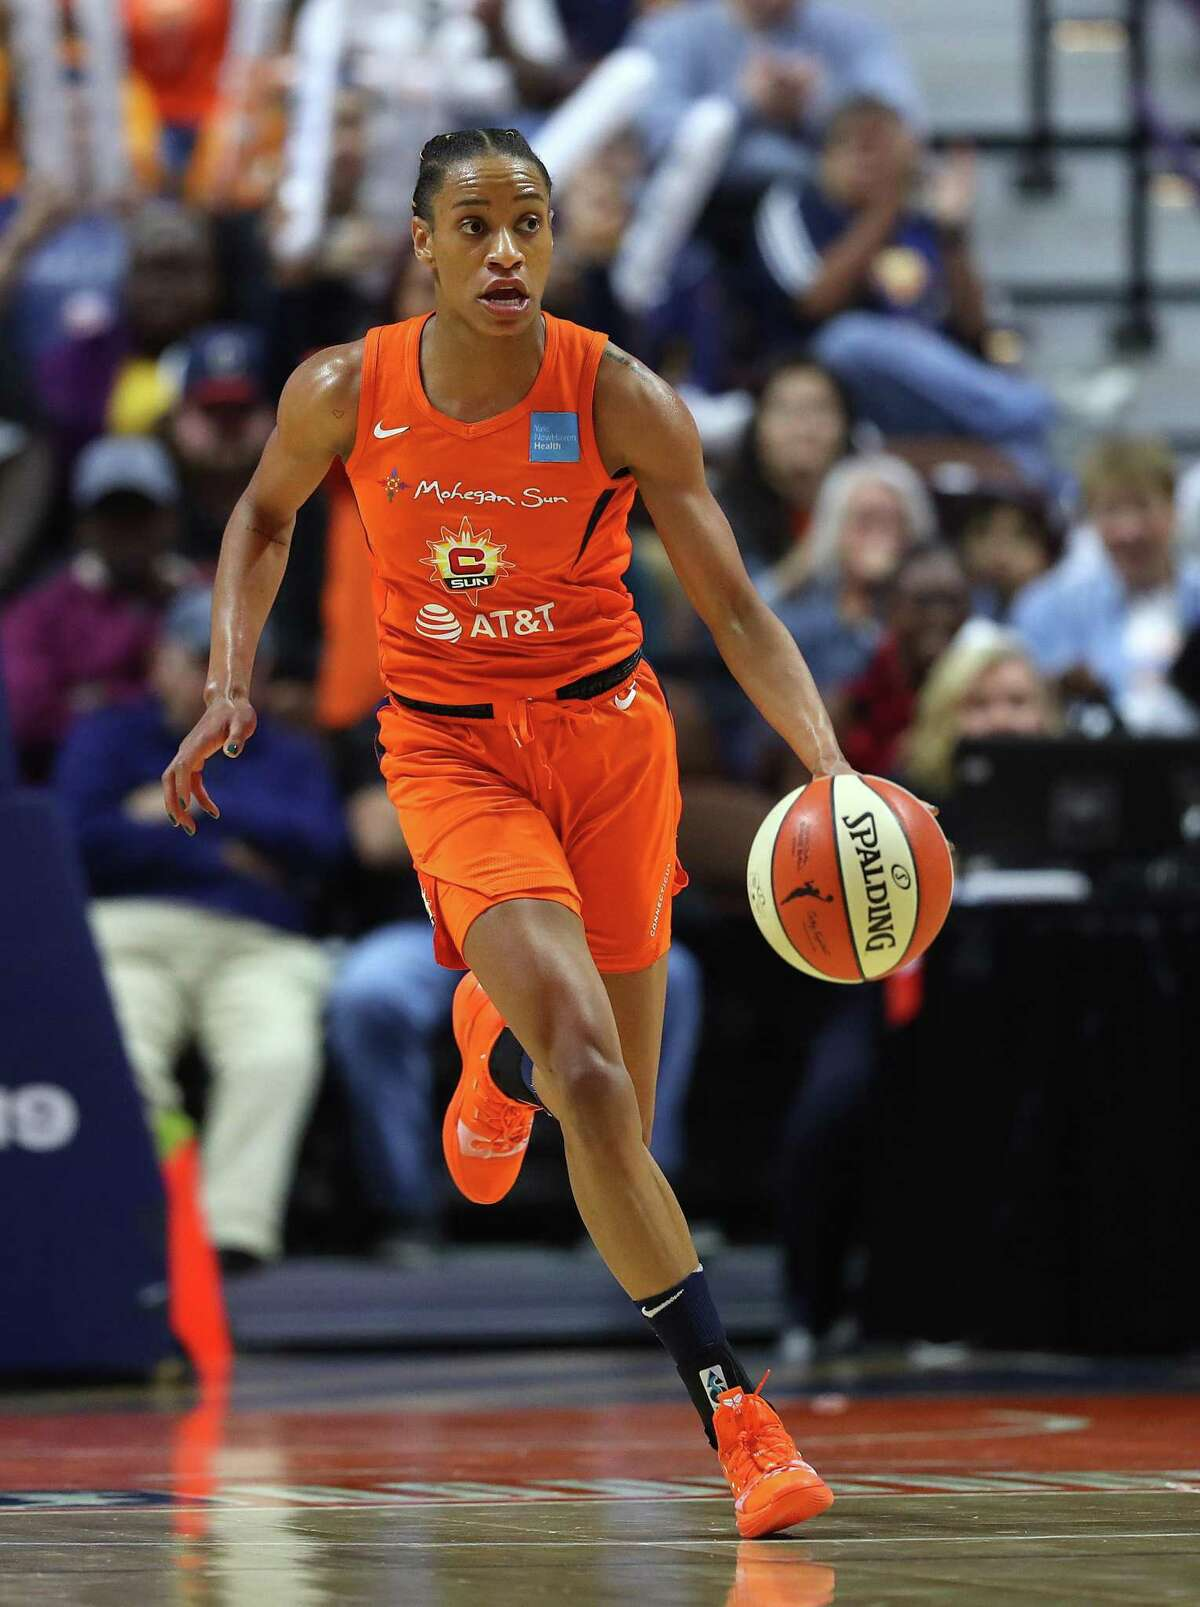 UNCASVILLE, CONNECTICUT - OCTOBER 08: Jasmine Thomas #5 of Connecticut Sun dribbles downcourt during Game Four of the 2019 WNBA Finals between the Washington Mystics and Connecticut Sun at Mohegan Sun Arena on October 08, 2019 in Uncasville, Connecticut. The Sun defeat the Mystics 90-86. (Photo by Maddie Meyer/Getty Images)